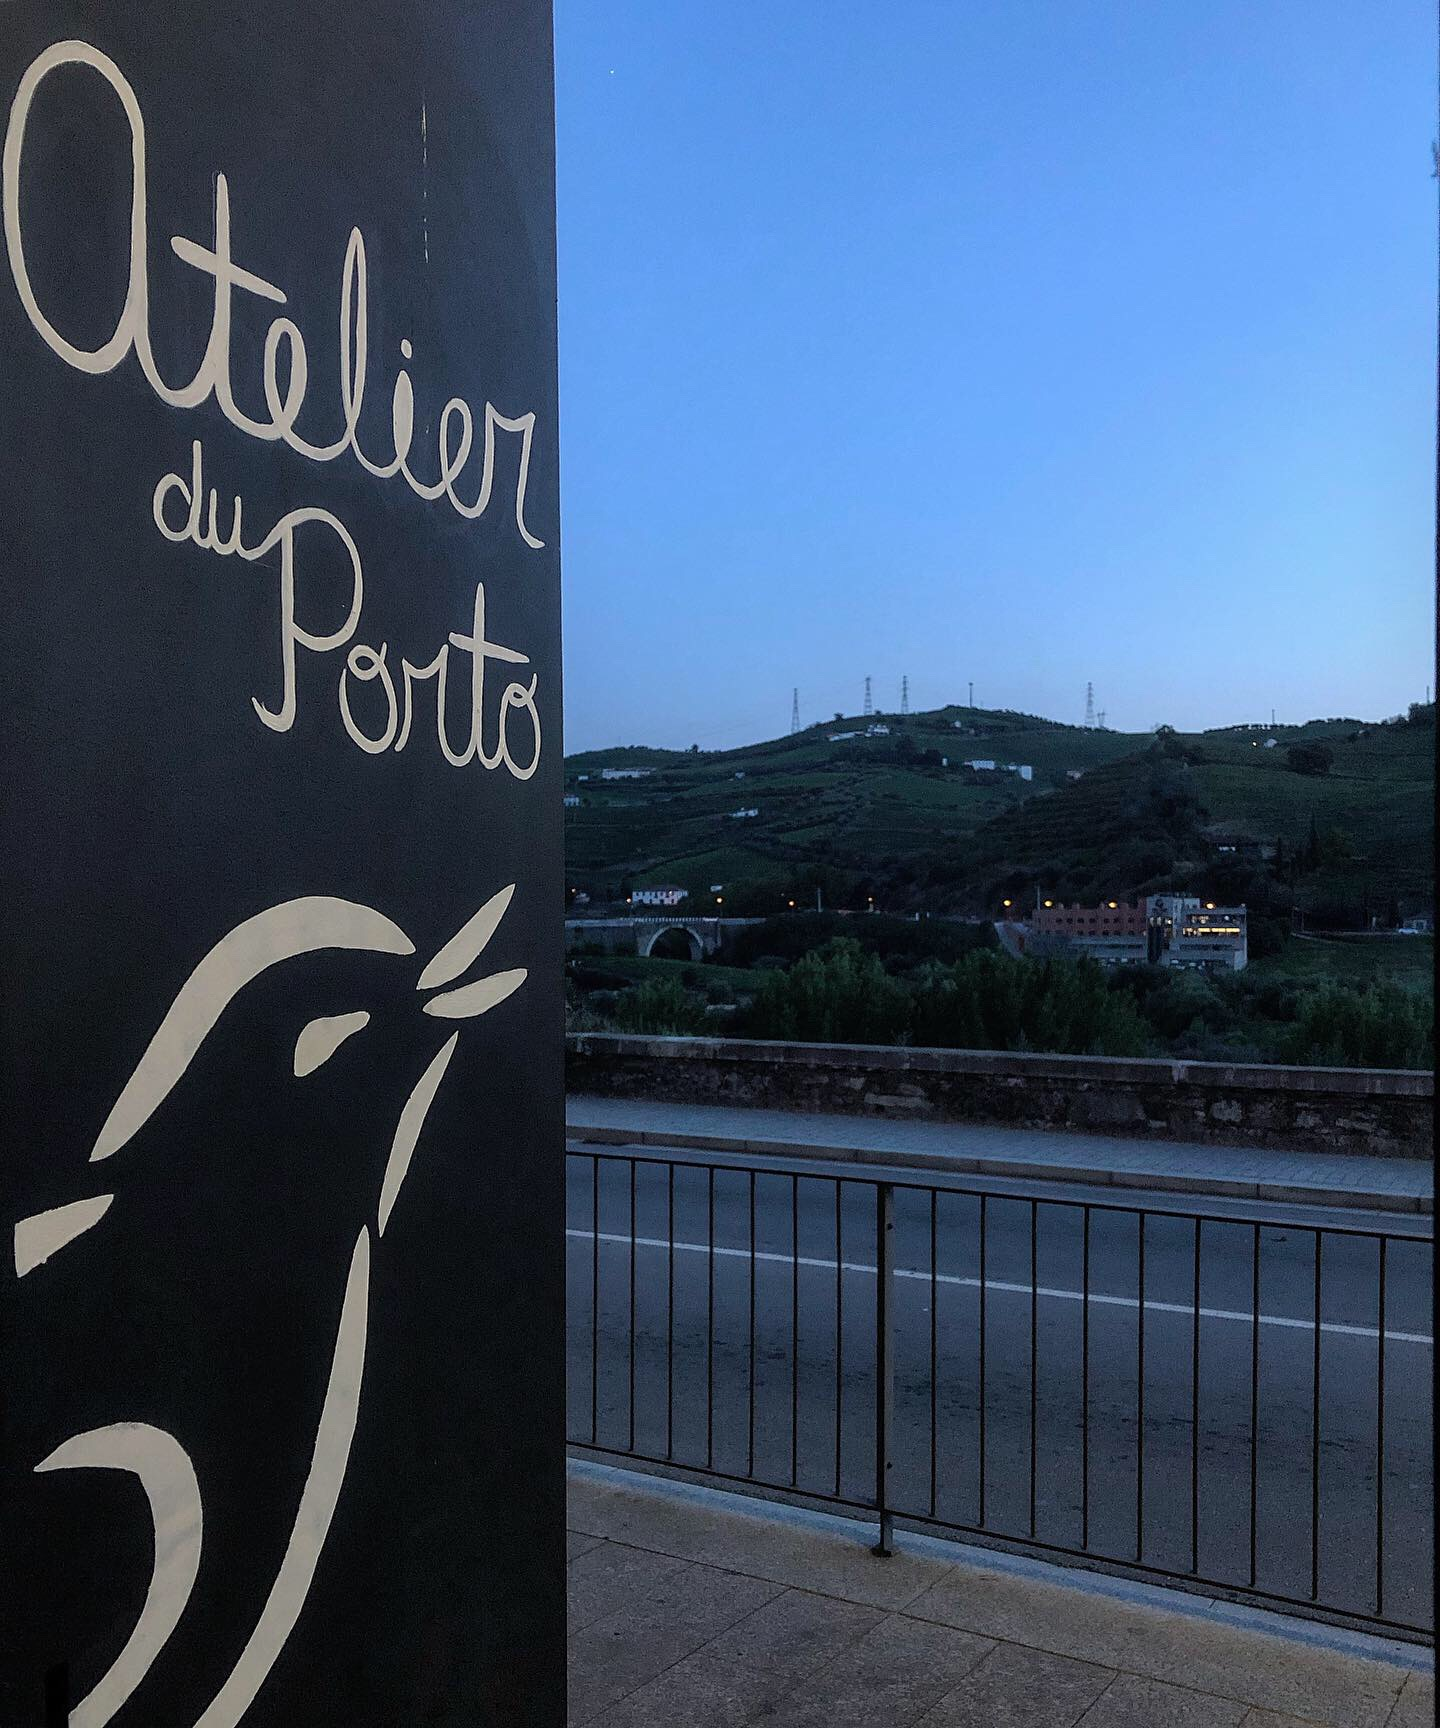 Tedo Tastings at Atelier do Porto next to Regua train station - open for In-depth tastings, chocolate and cheese pairings or even a scoop of Ruby Port or almond ice cream on the esplanade.